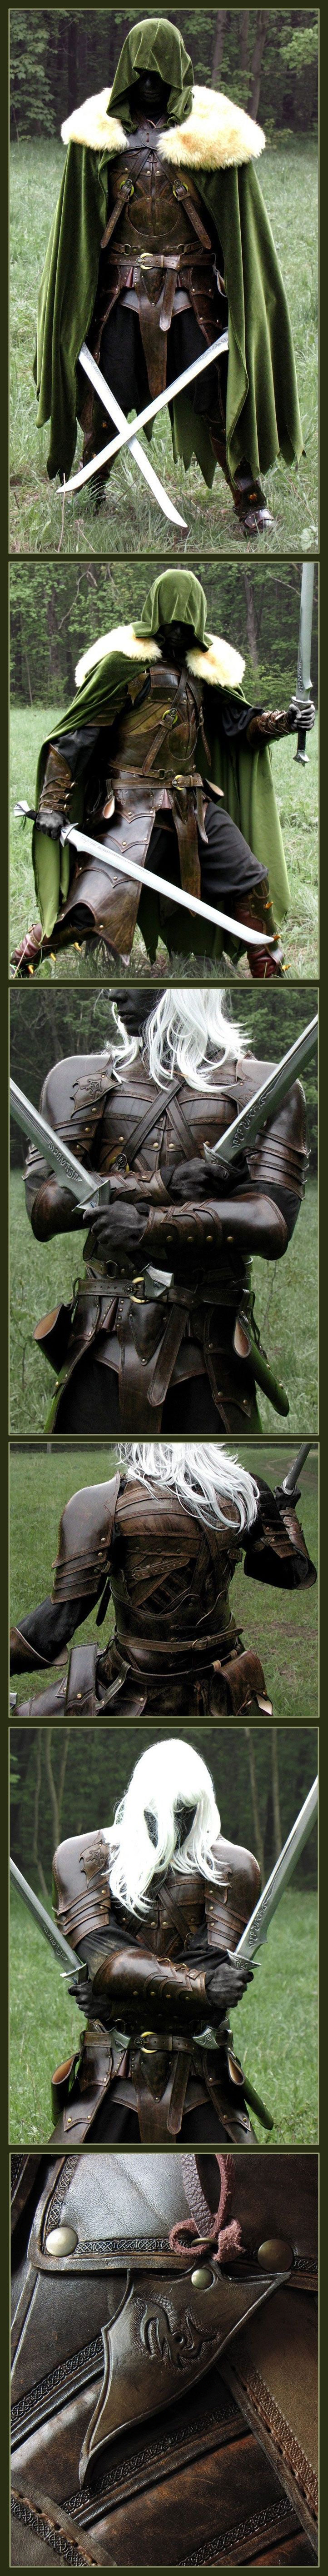 Drizzt Do'Urden looking absolutely fantastic!! :D